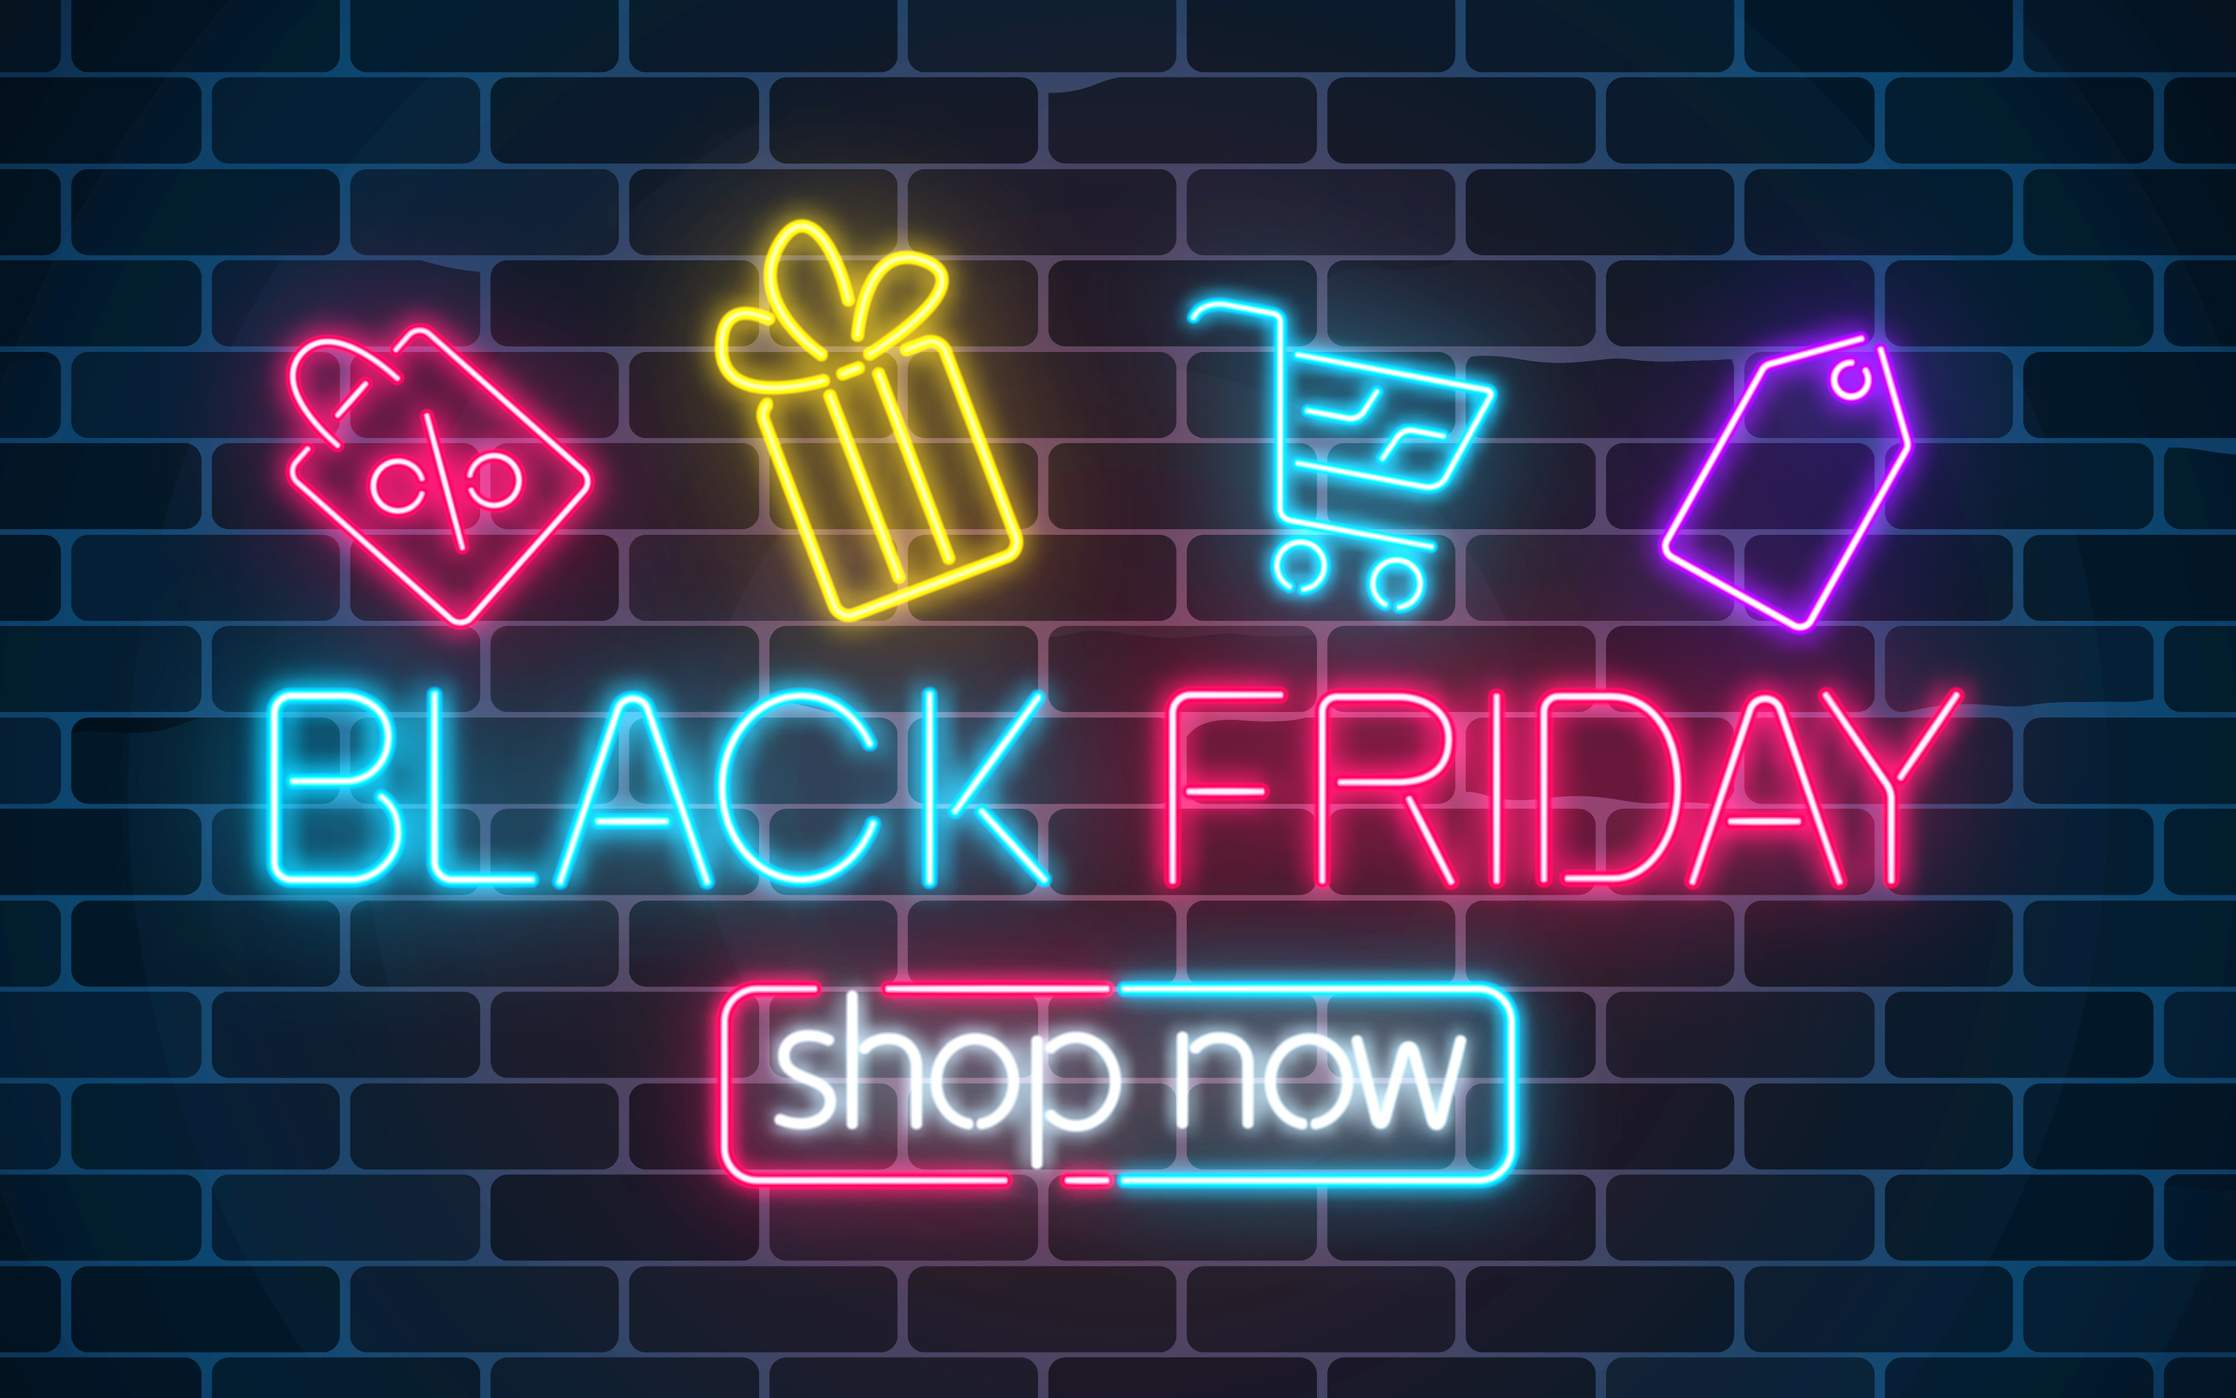 black-friday-compras-neon.jpg